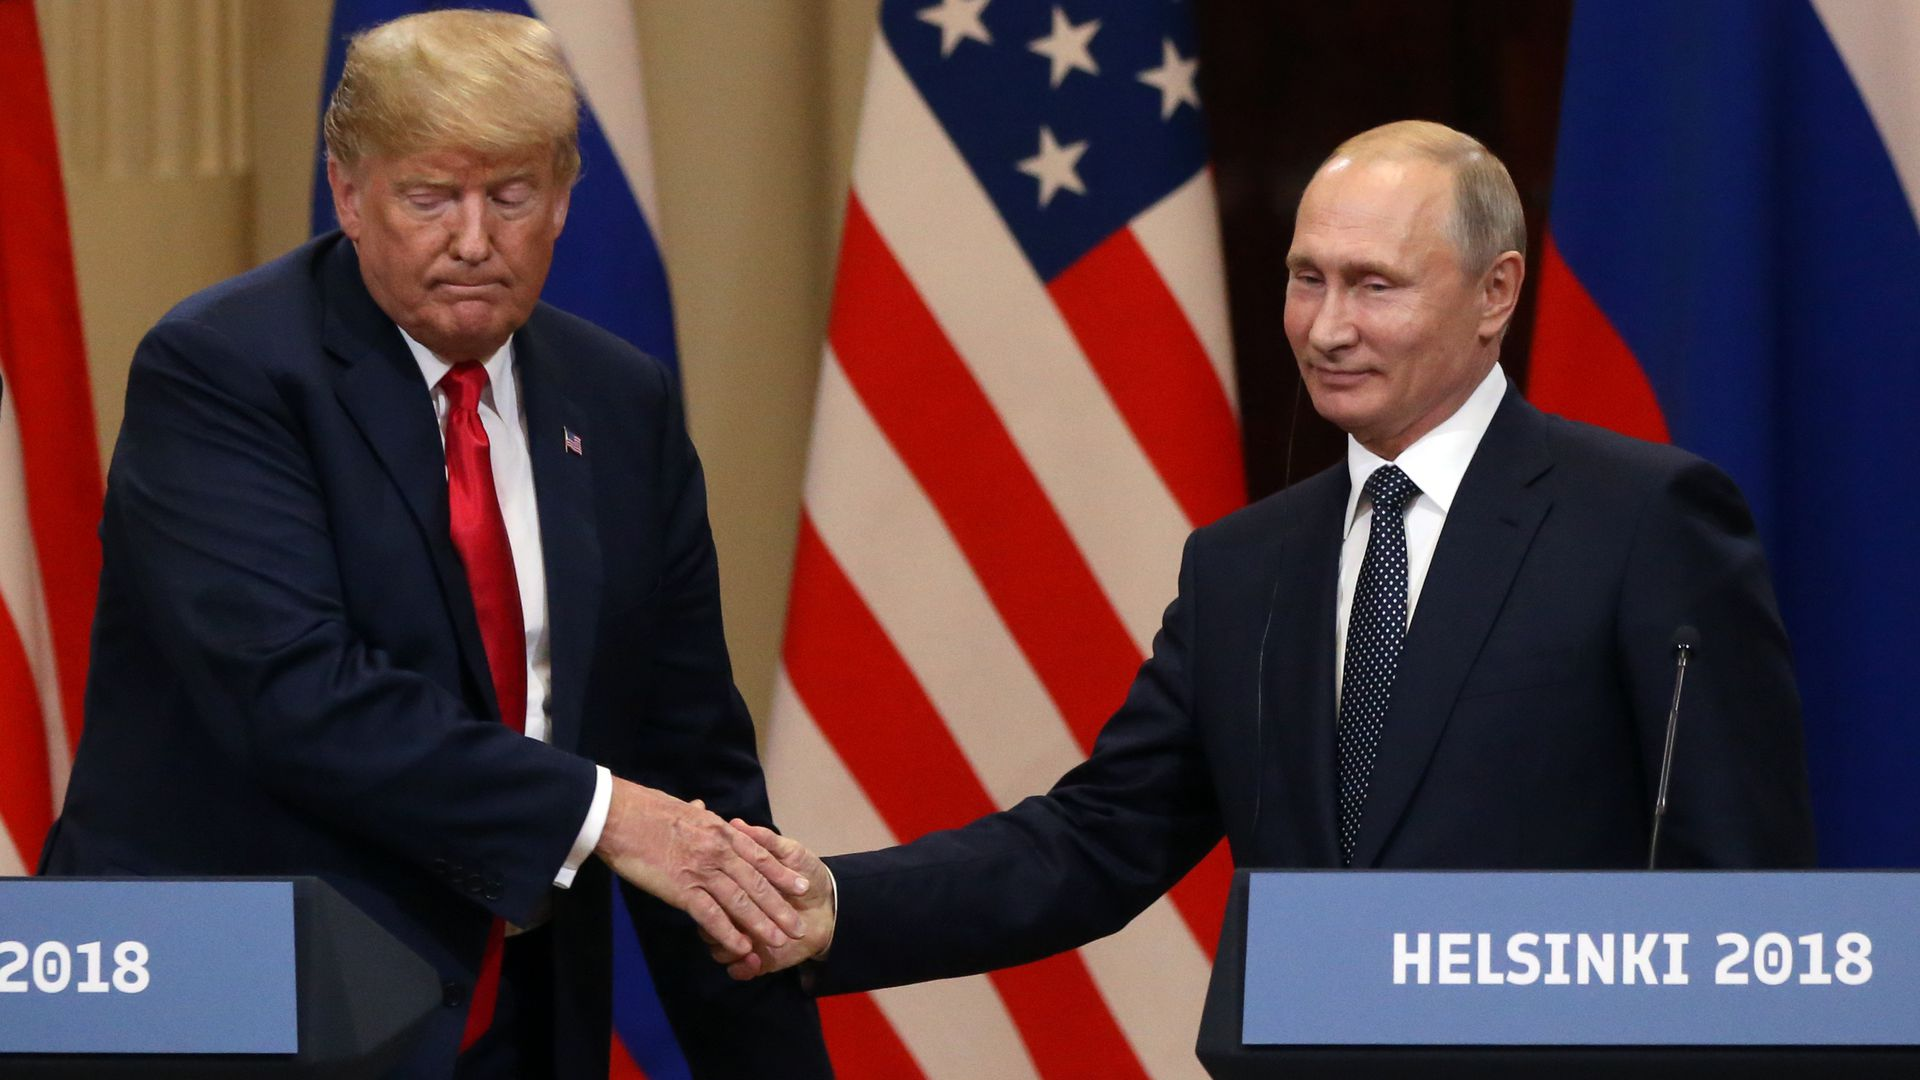 Trump and Putin shake hands while standing at podiums for press conference